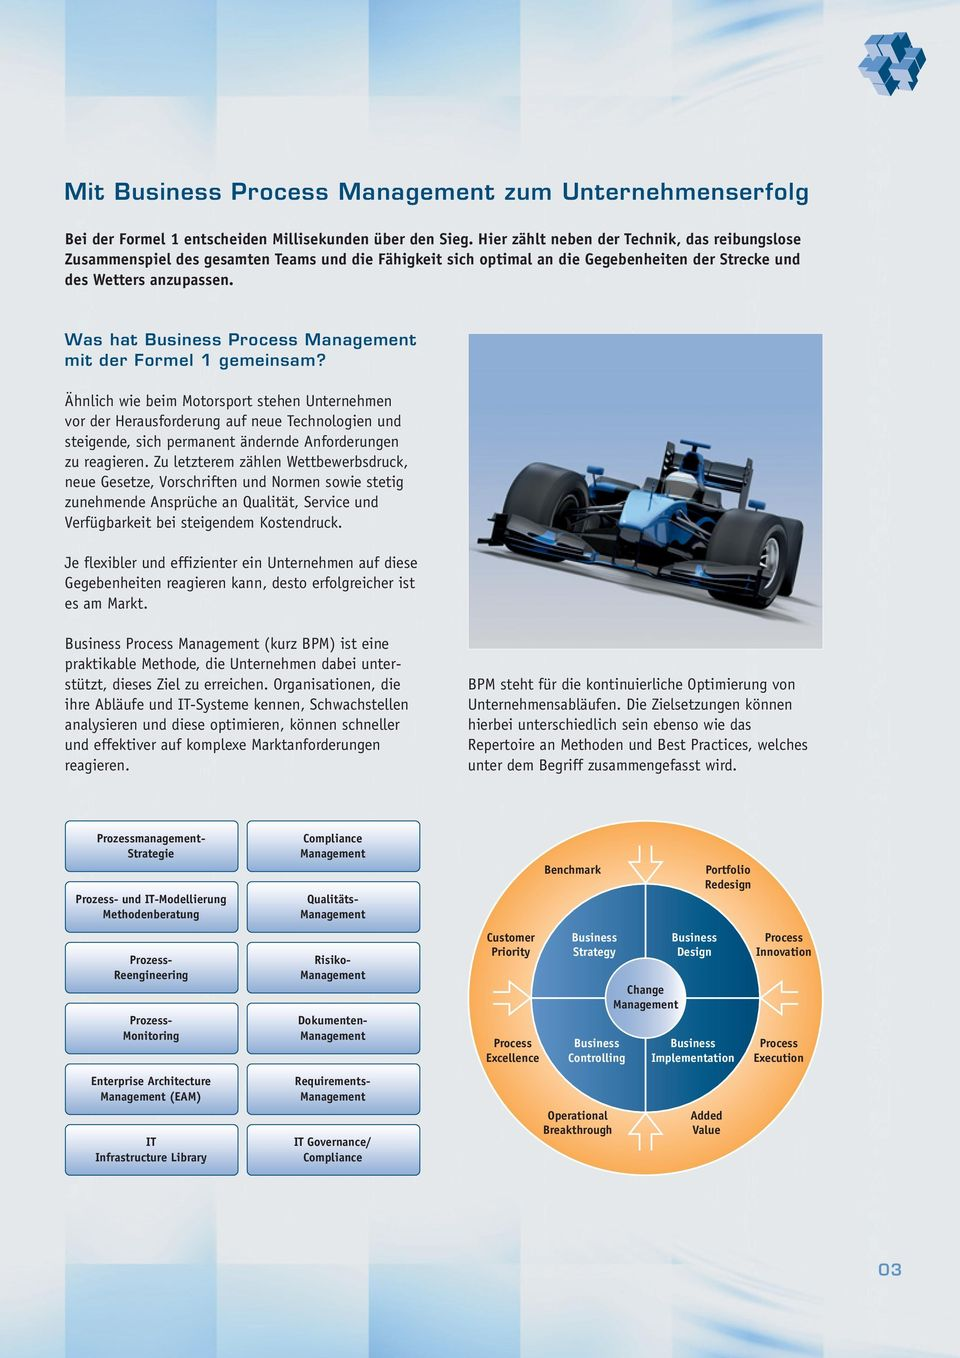 Was hat Business Process Management mit der Formel 1 gemeinsam?